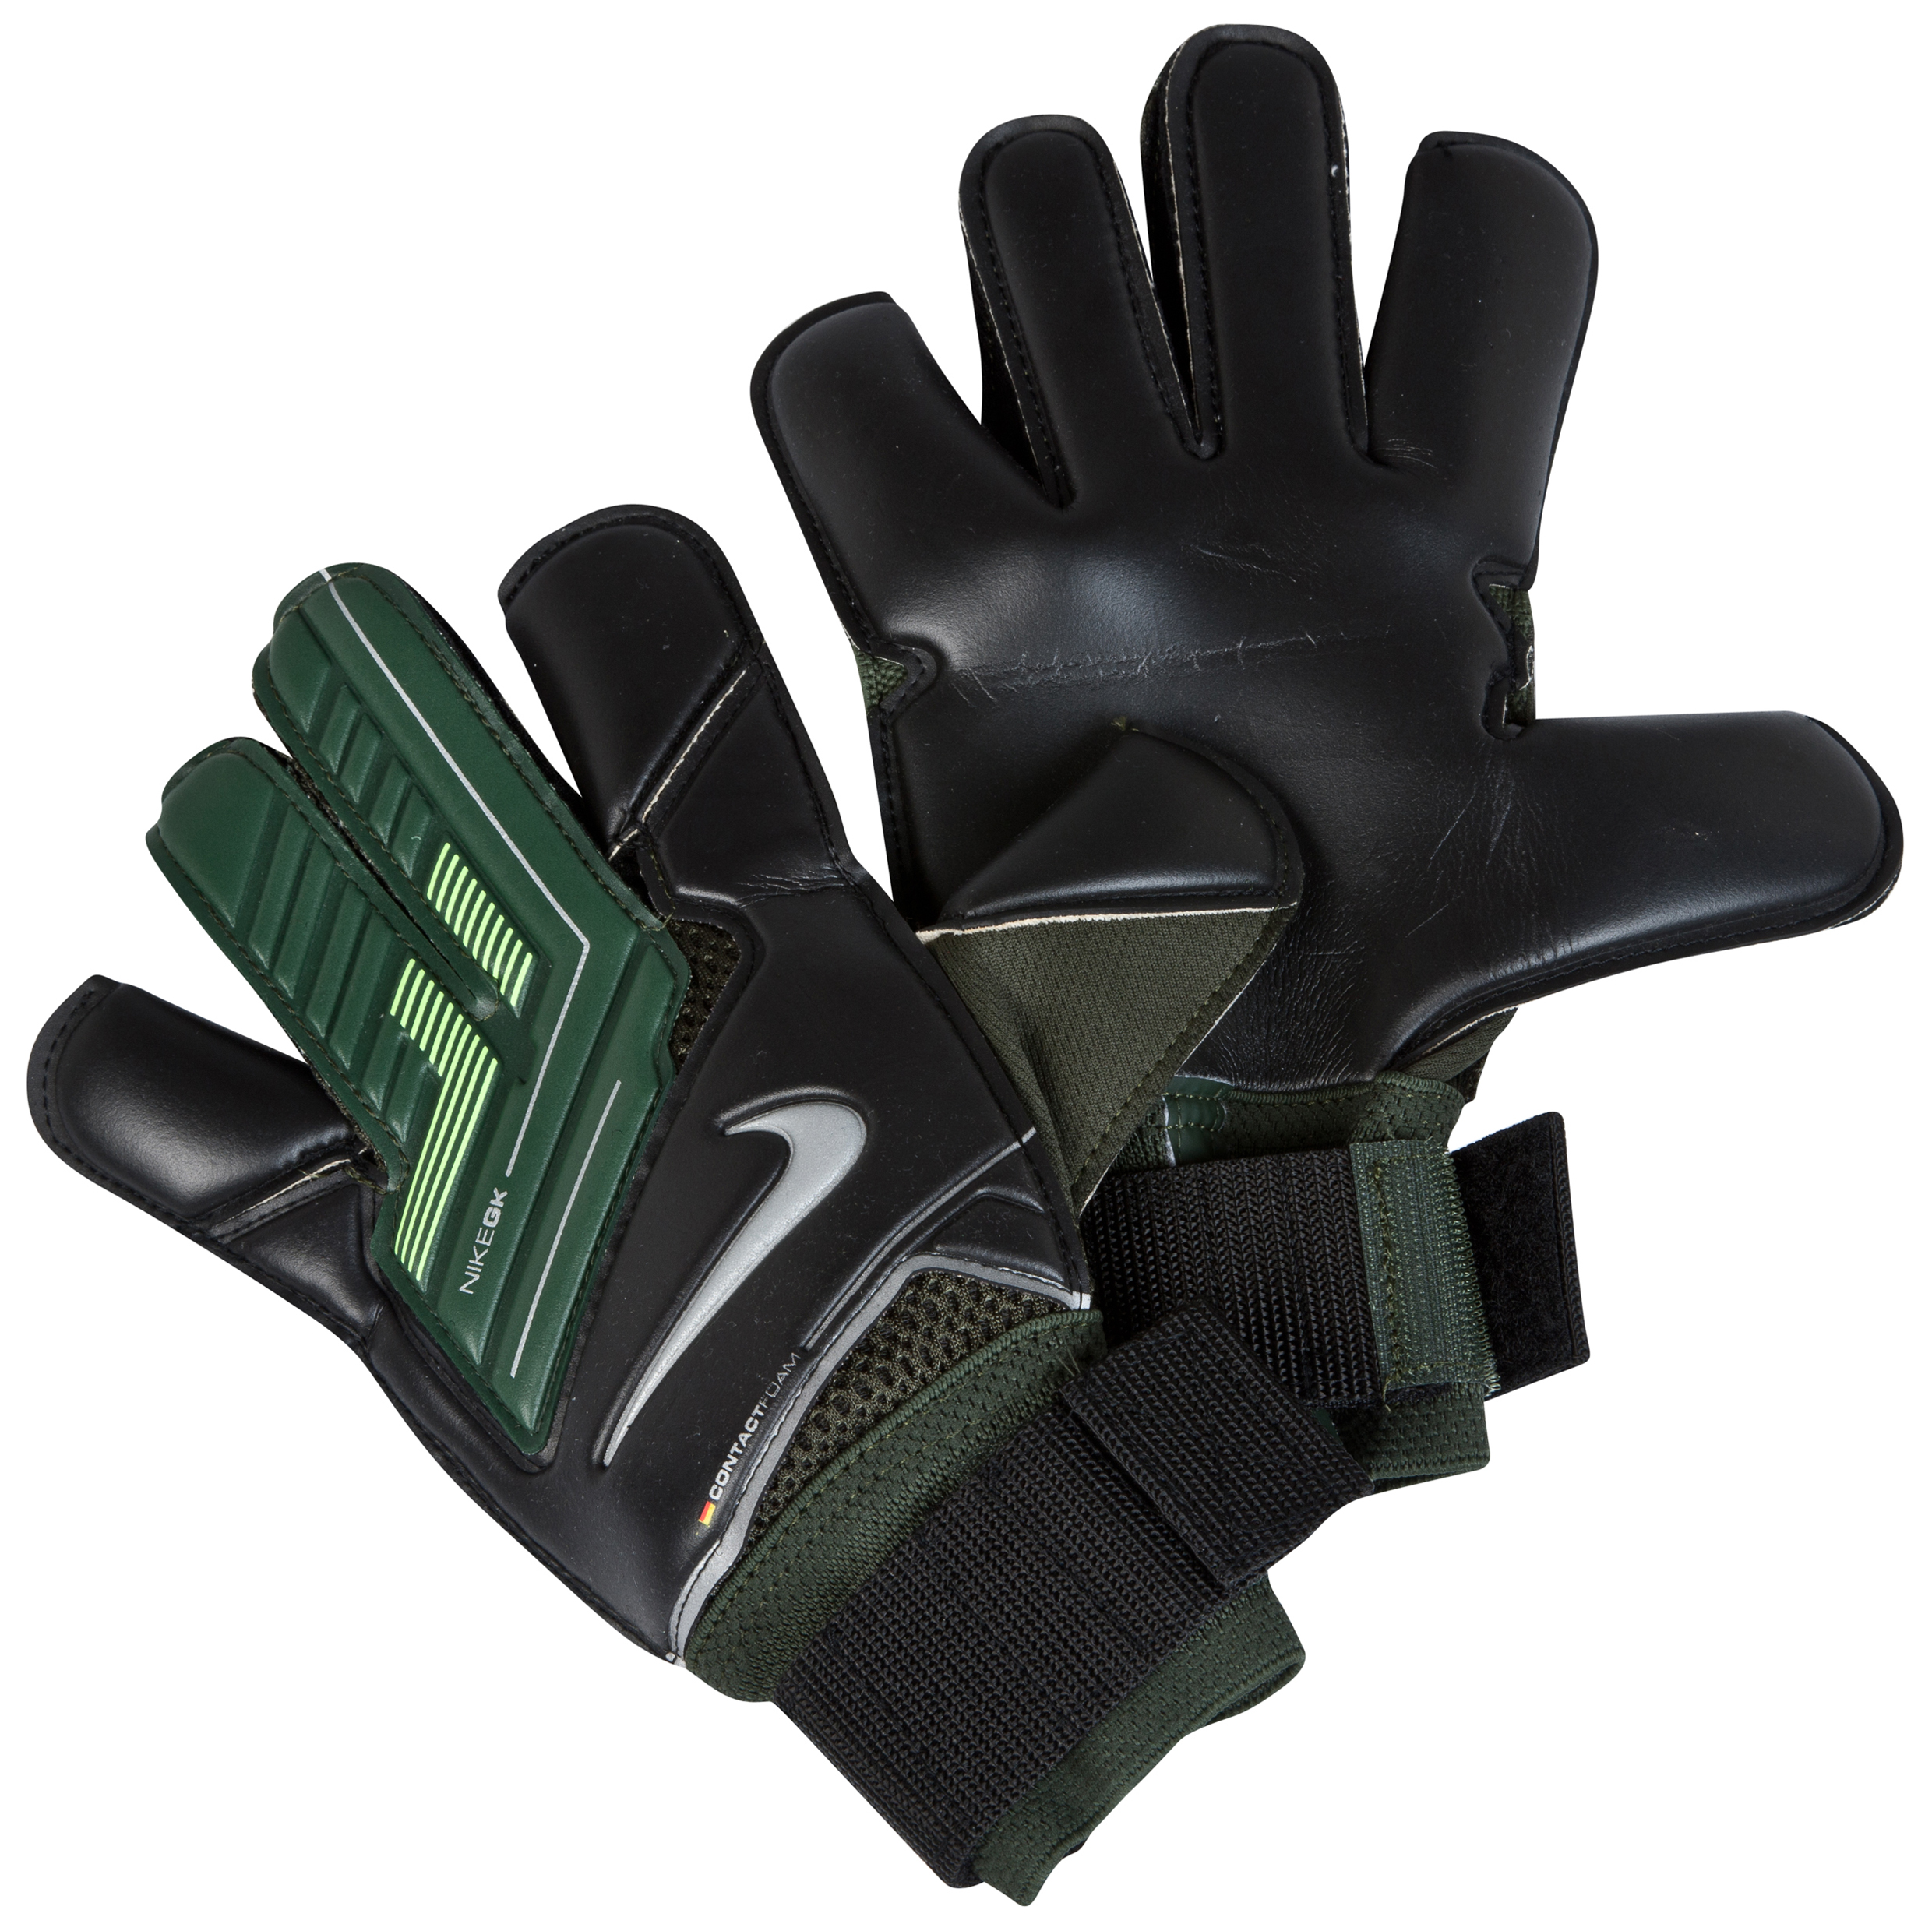 Nike Vapor Grip 3 Goalkeeper Gloves Black